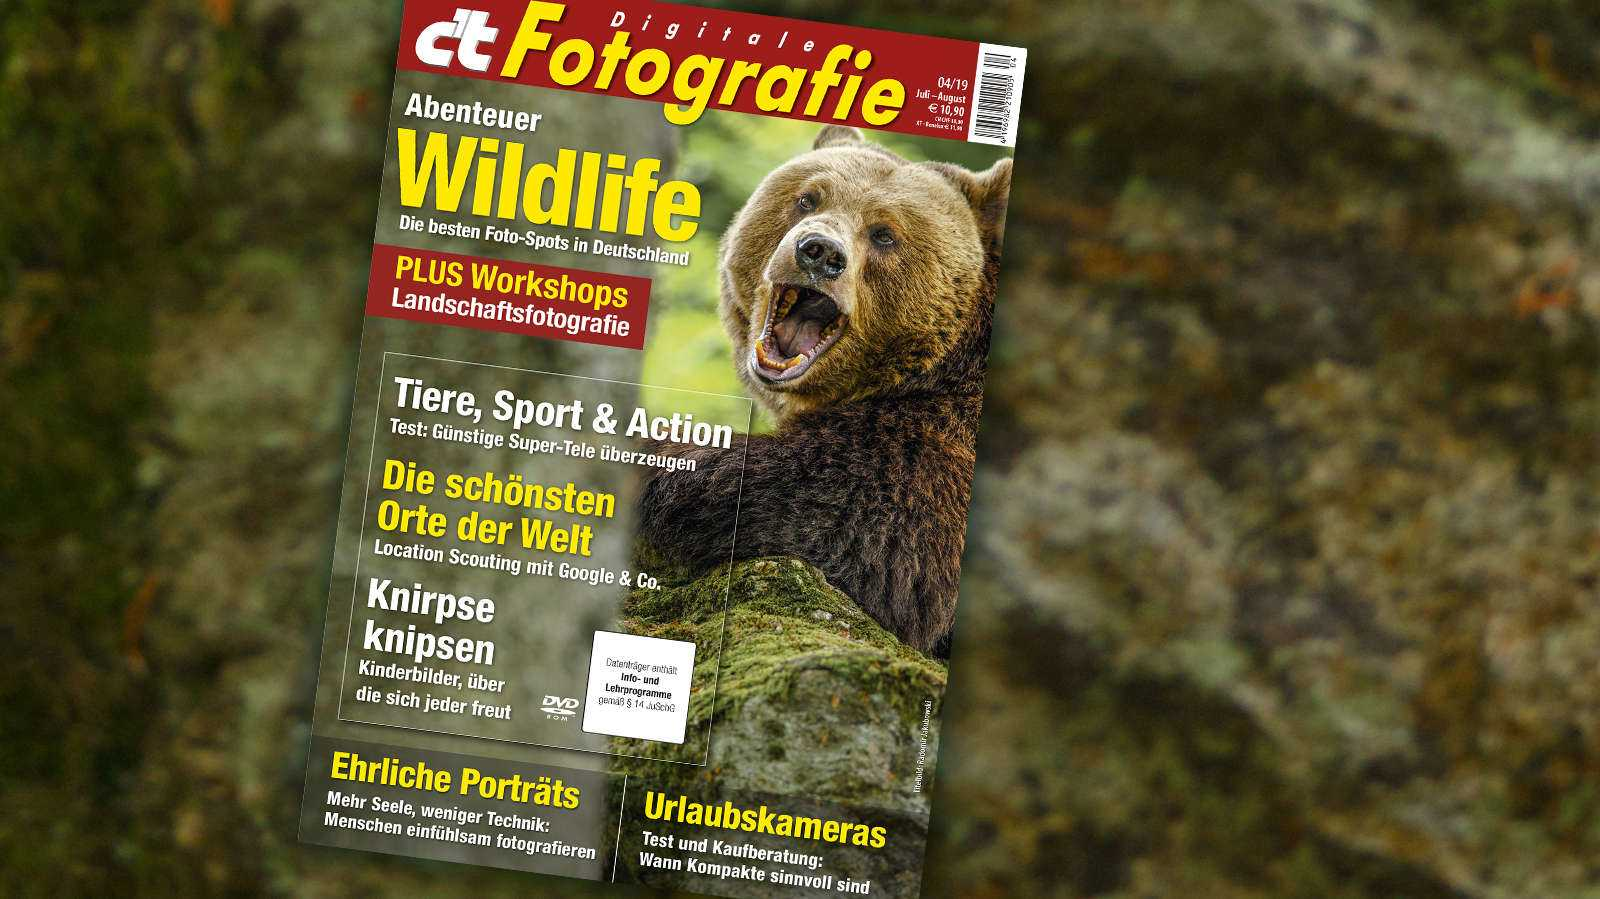 c't Fotografie 04/2019: Digitales Locations-Scouting